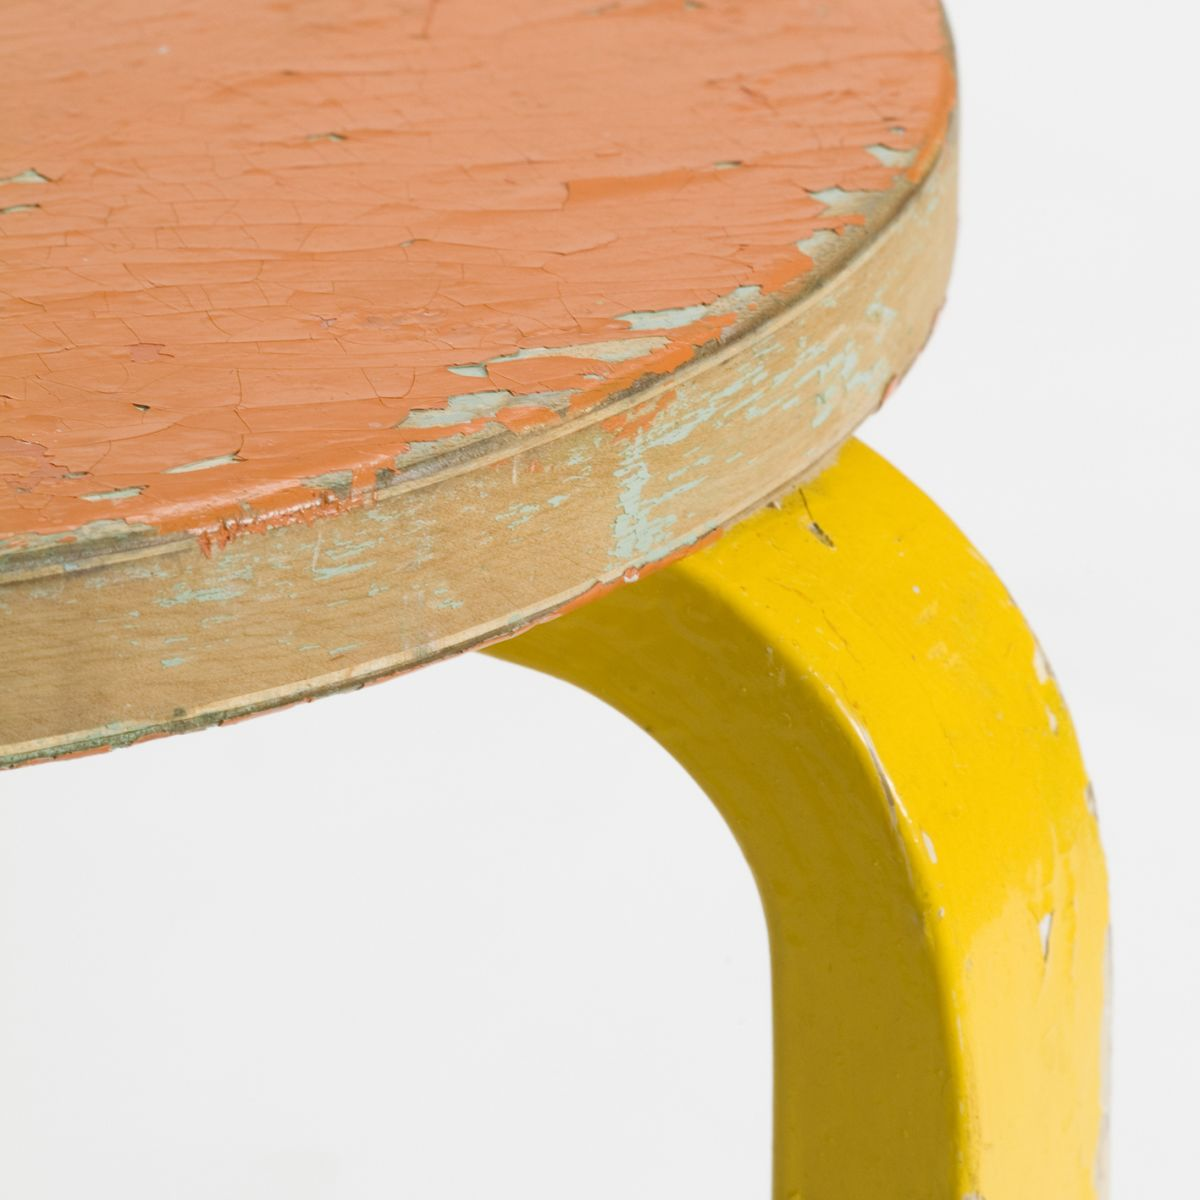 Stool-60-2Nd-Cycle-Close-Orange-Yellow-1844636